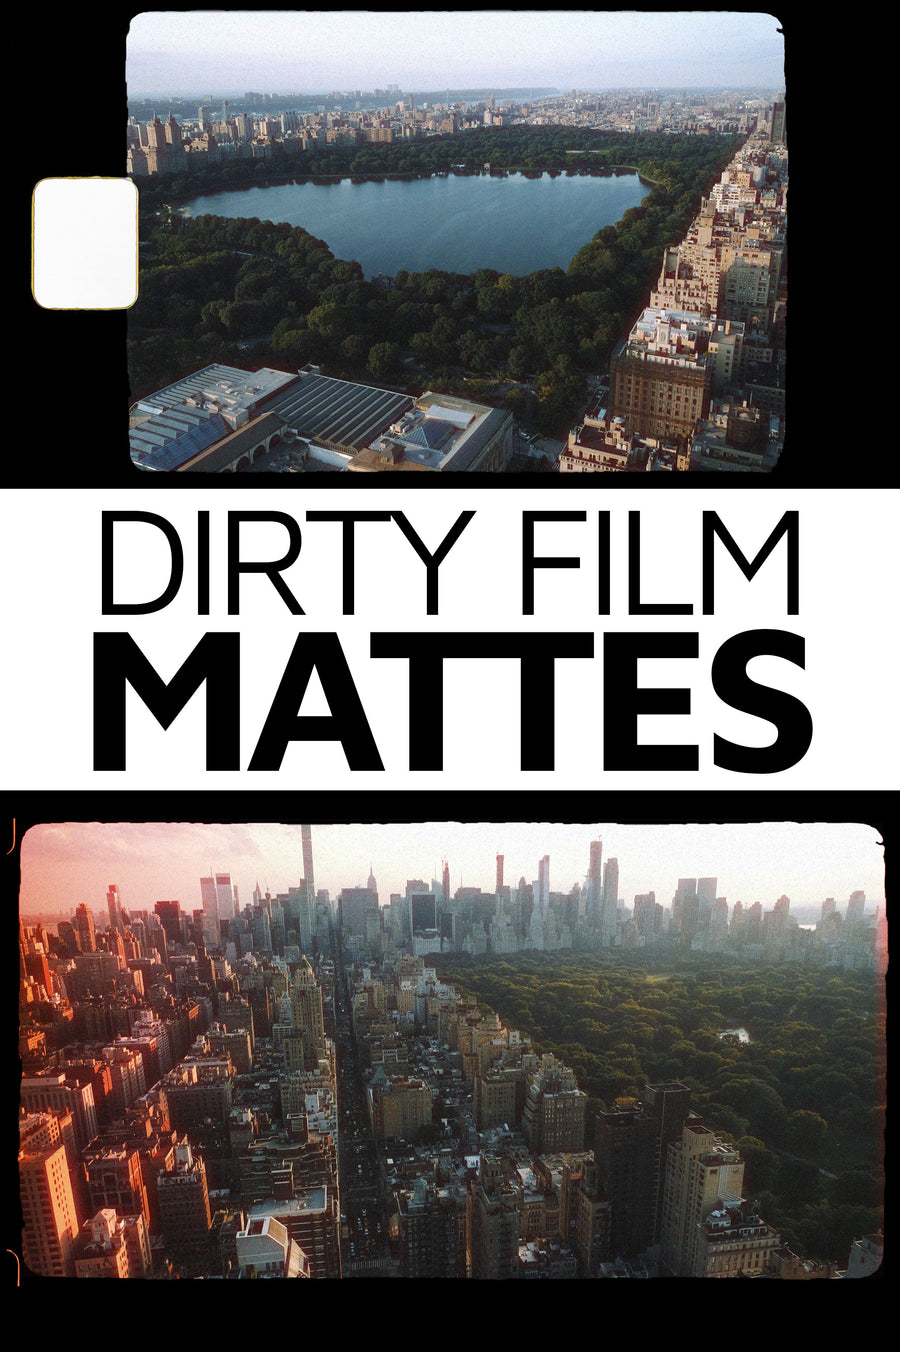 DIRTY FILM MATTES